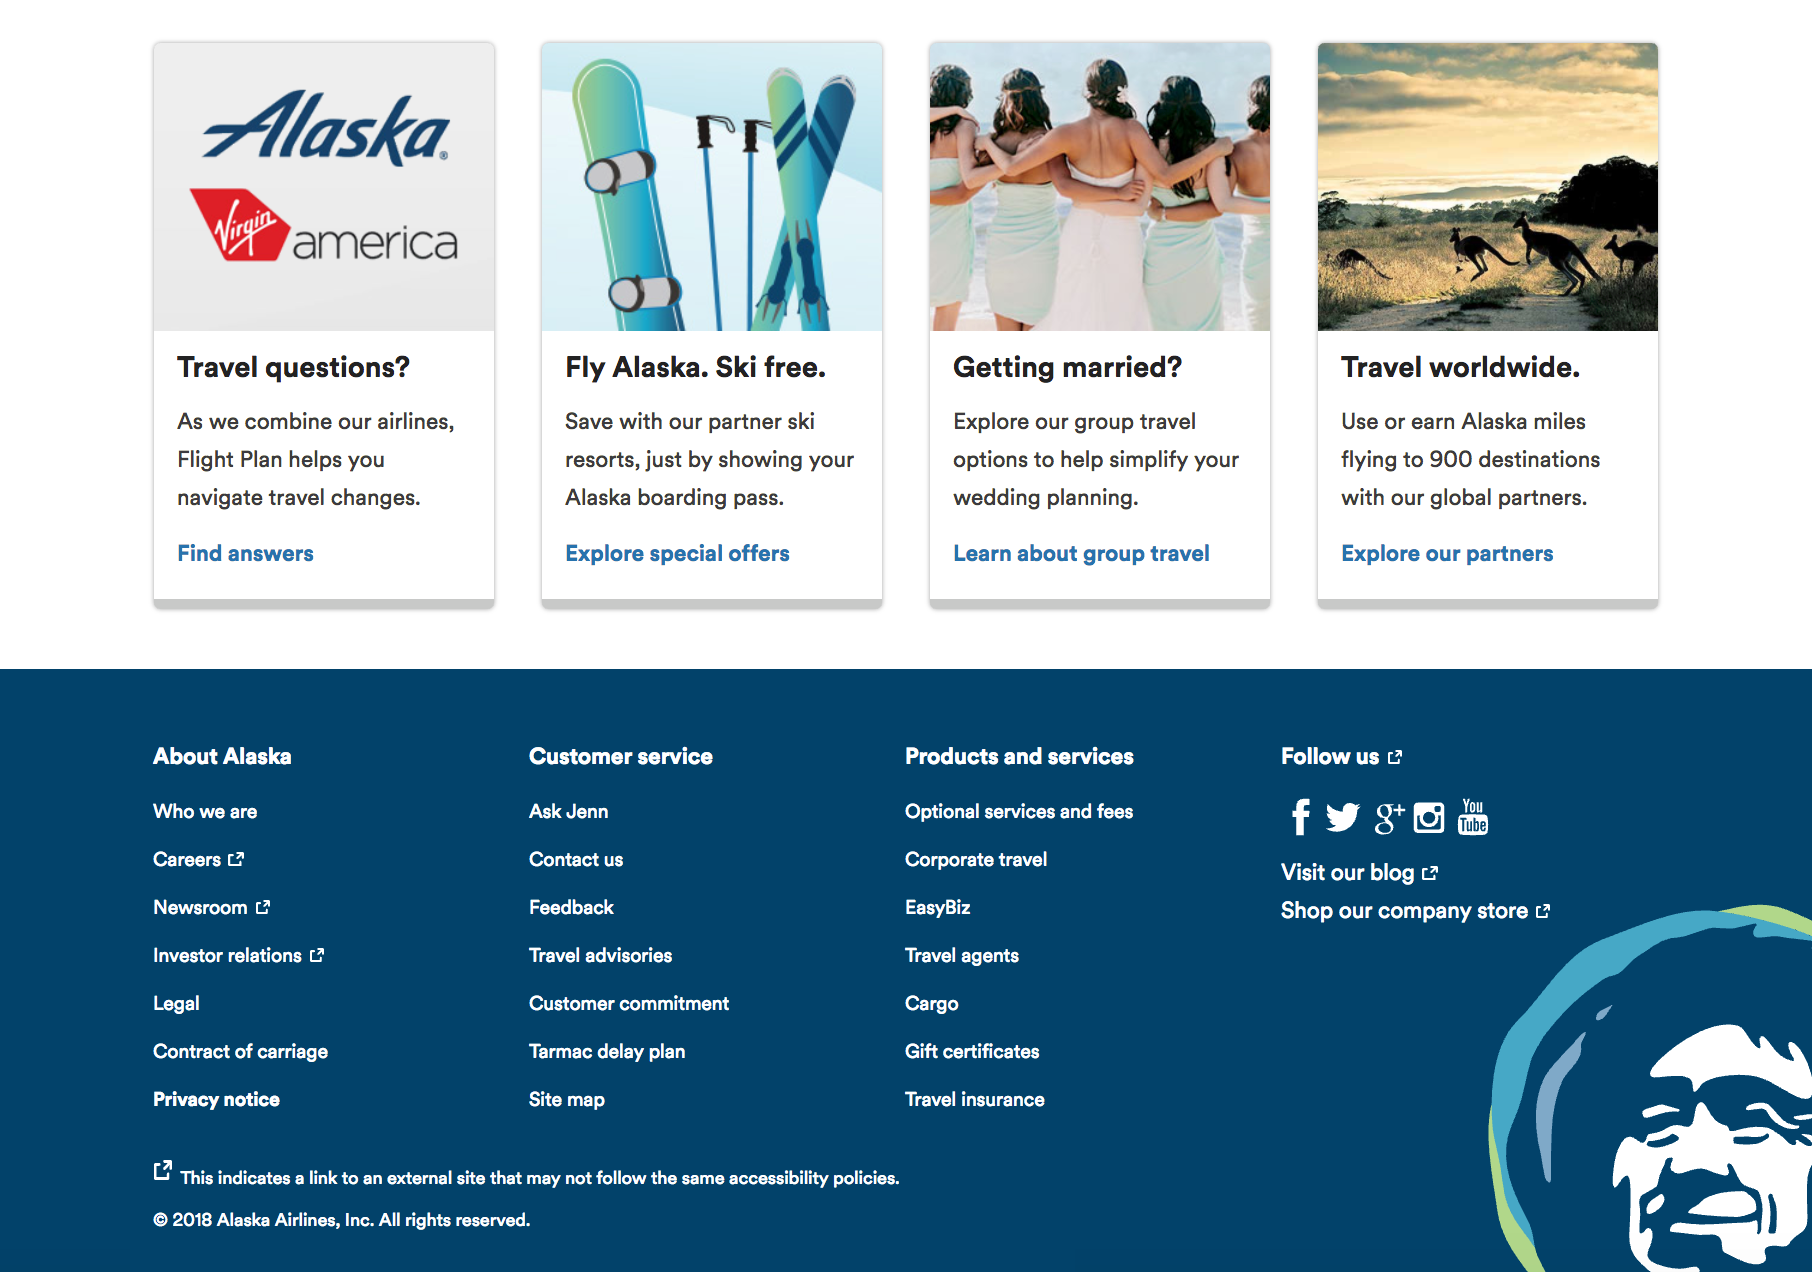 alaska airlines website footer color psychology